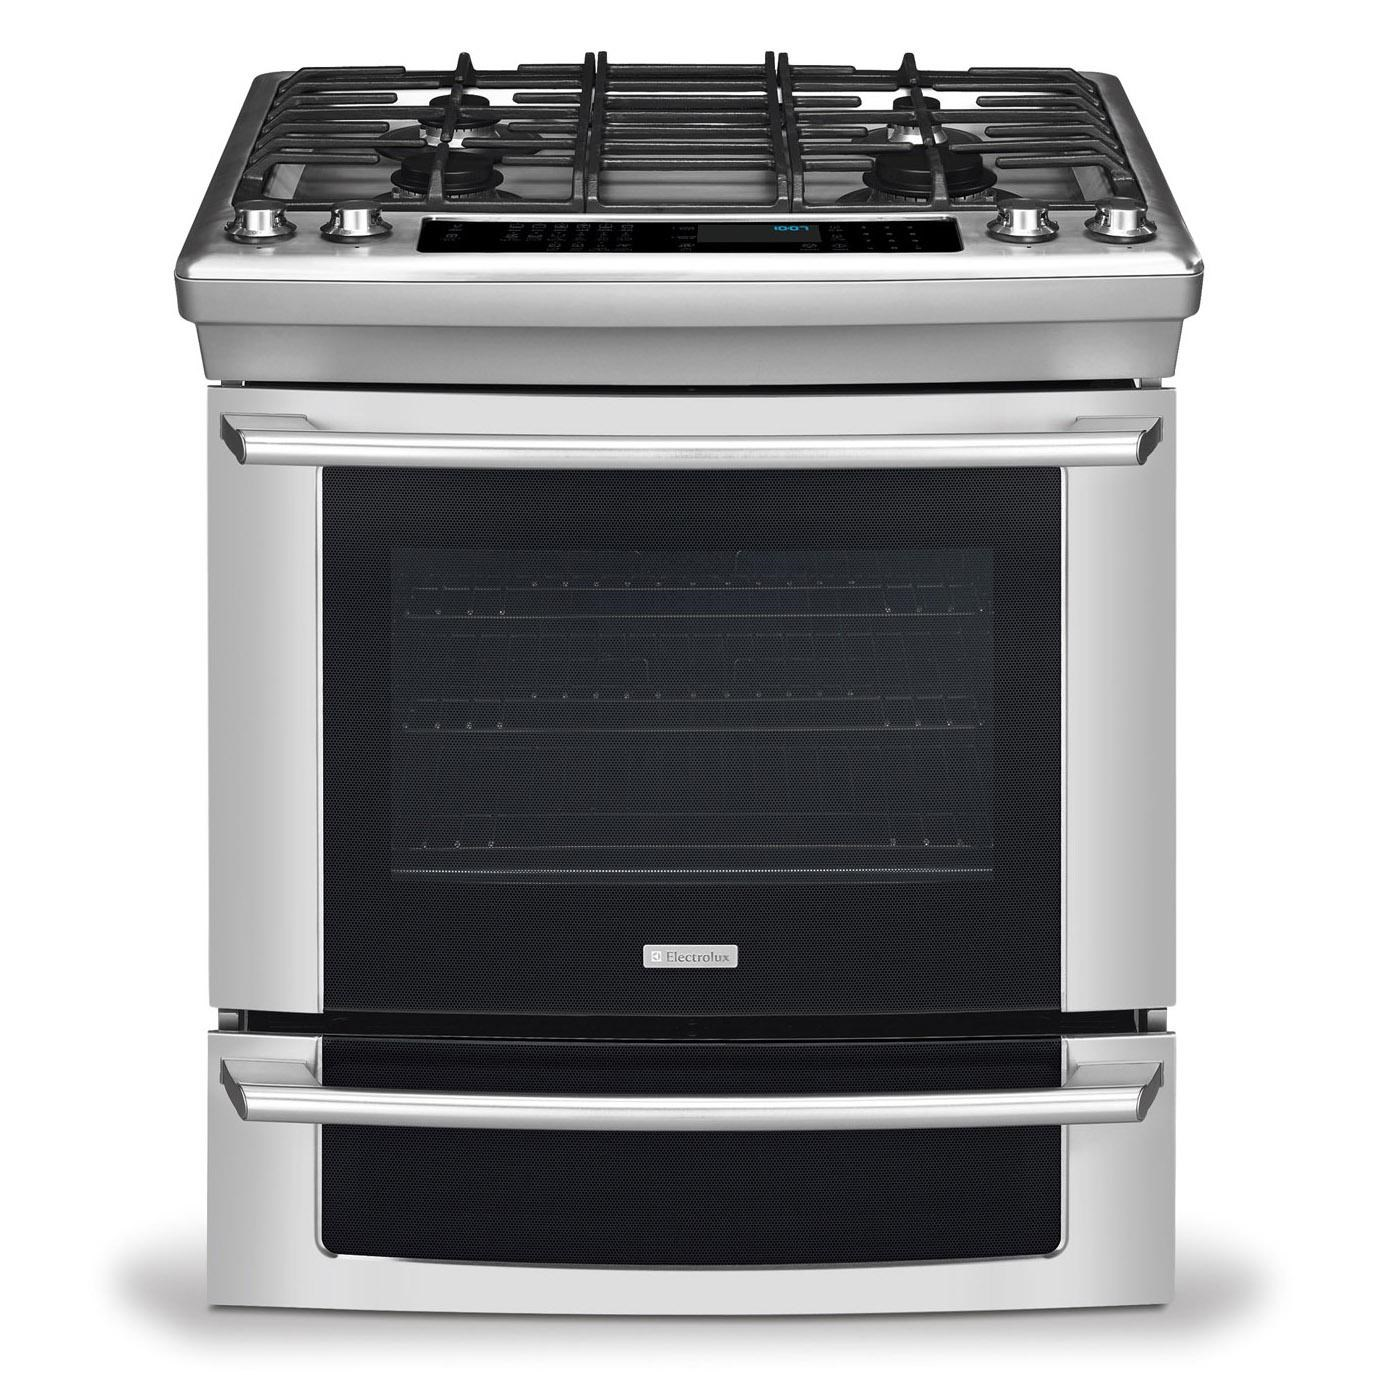 Electrolux 30u0026quot; Slide-In Dual-Fuel Range with 4.2 Cu. Ft. Convection Oven - Furniture and ...